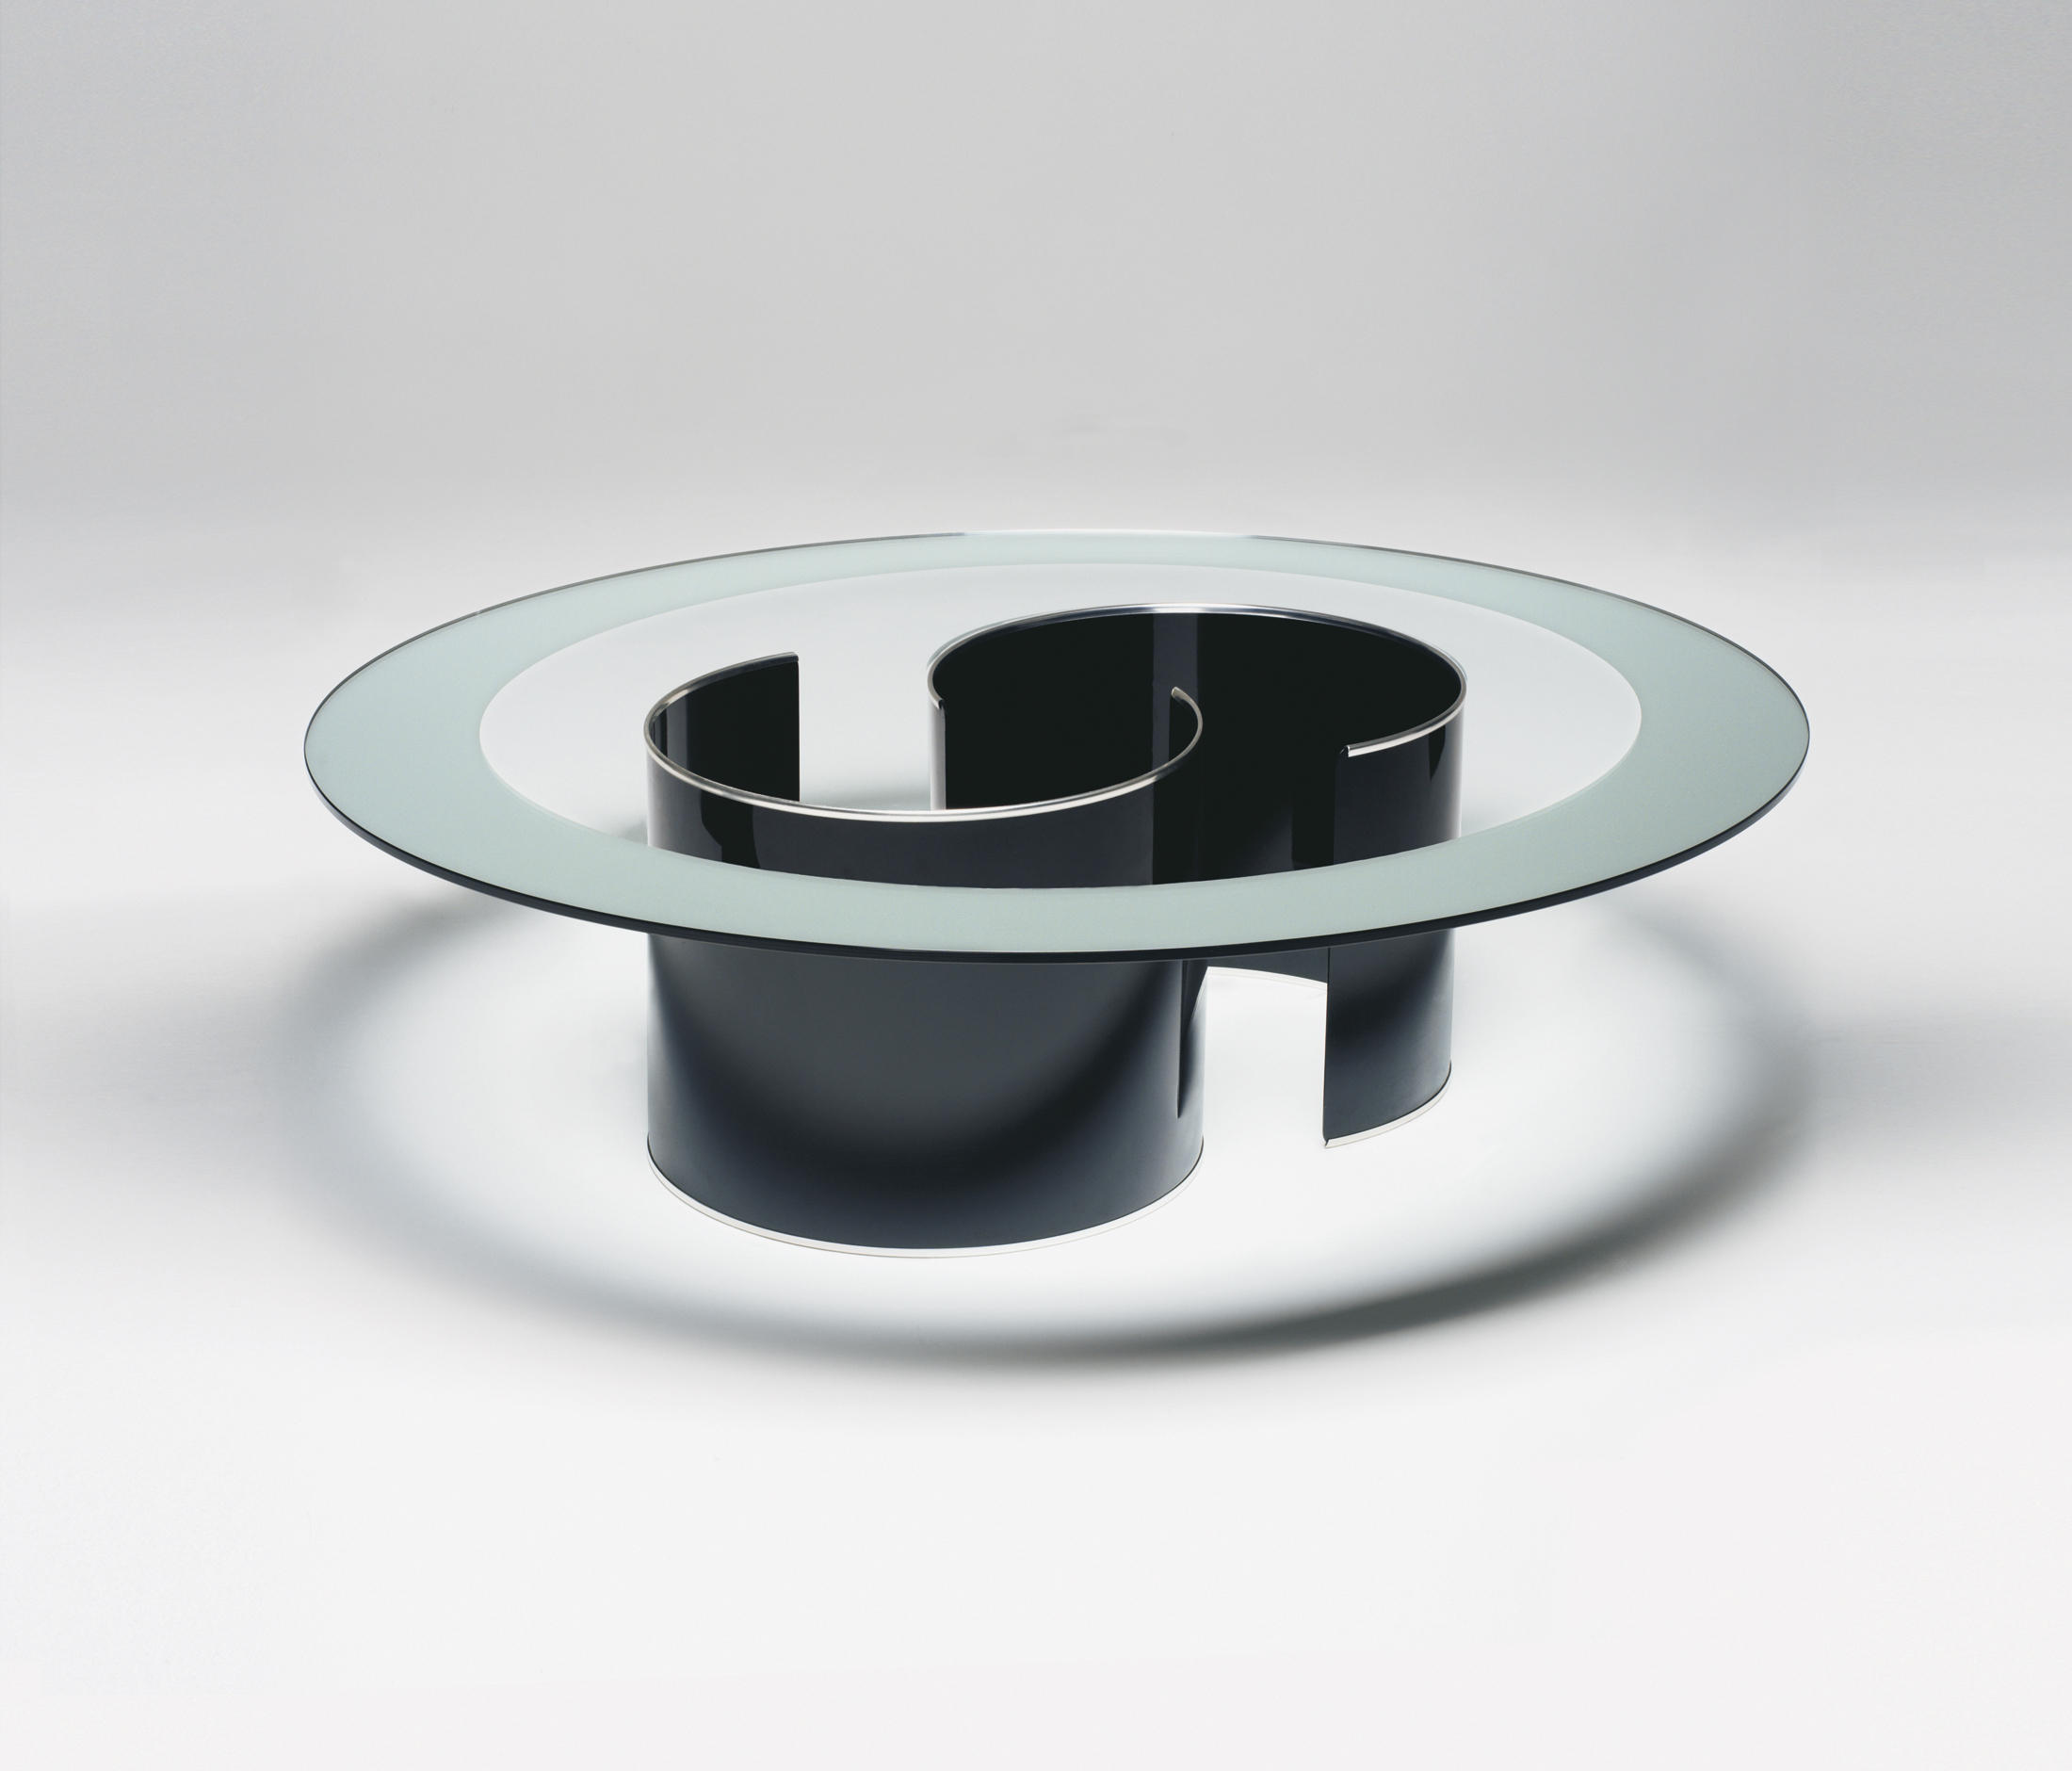 The Fasce Specchiata table from 1970 by Luigi Caccia Dominioni for Azucena. The magnificent steel and glass design will be part of the Azucena collection from B&B Italia